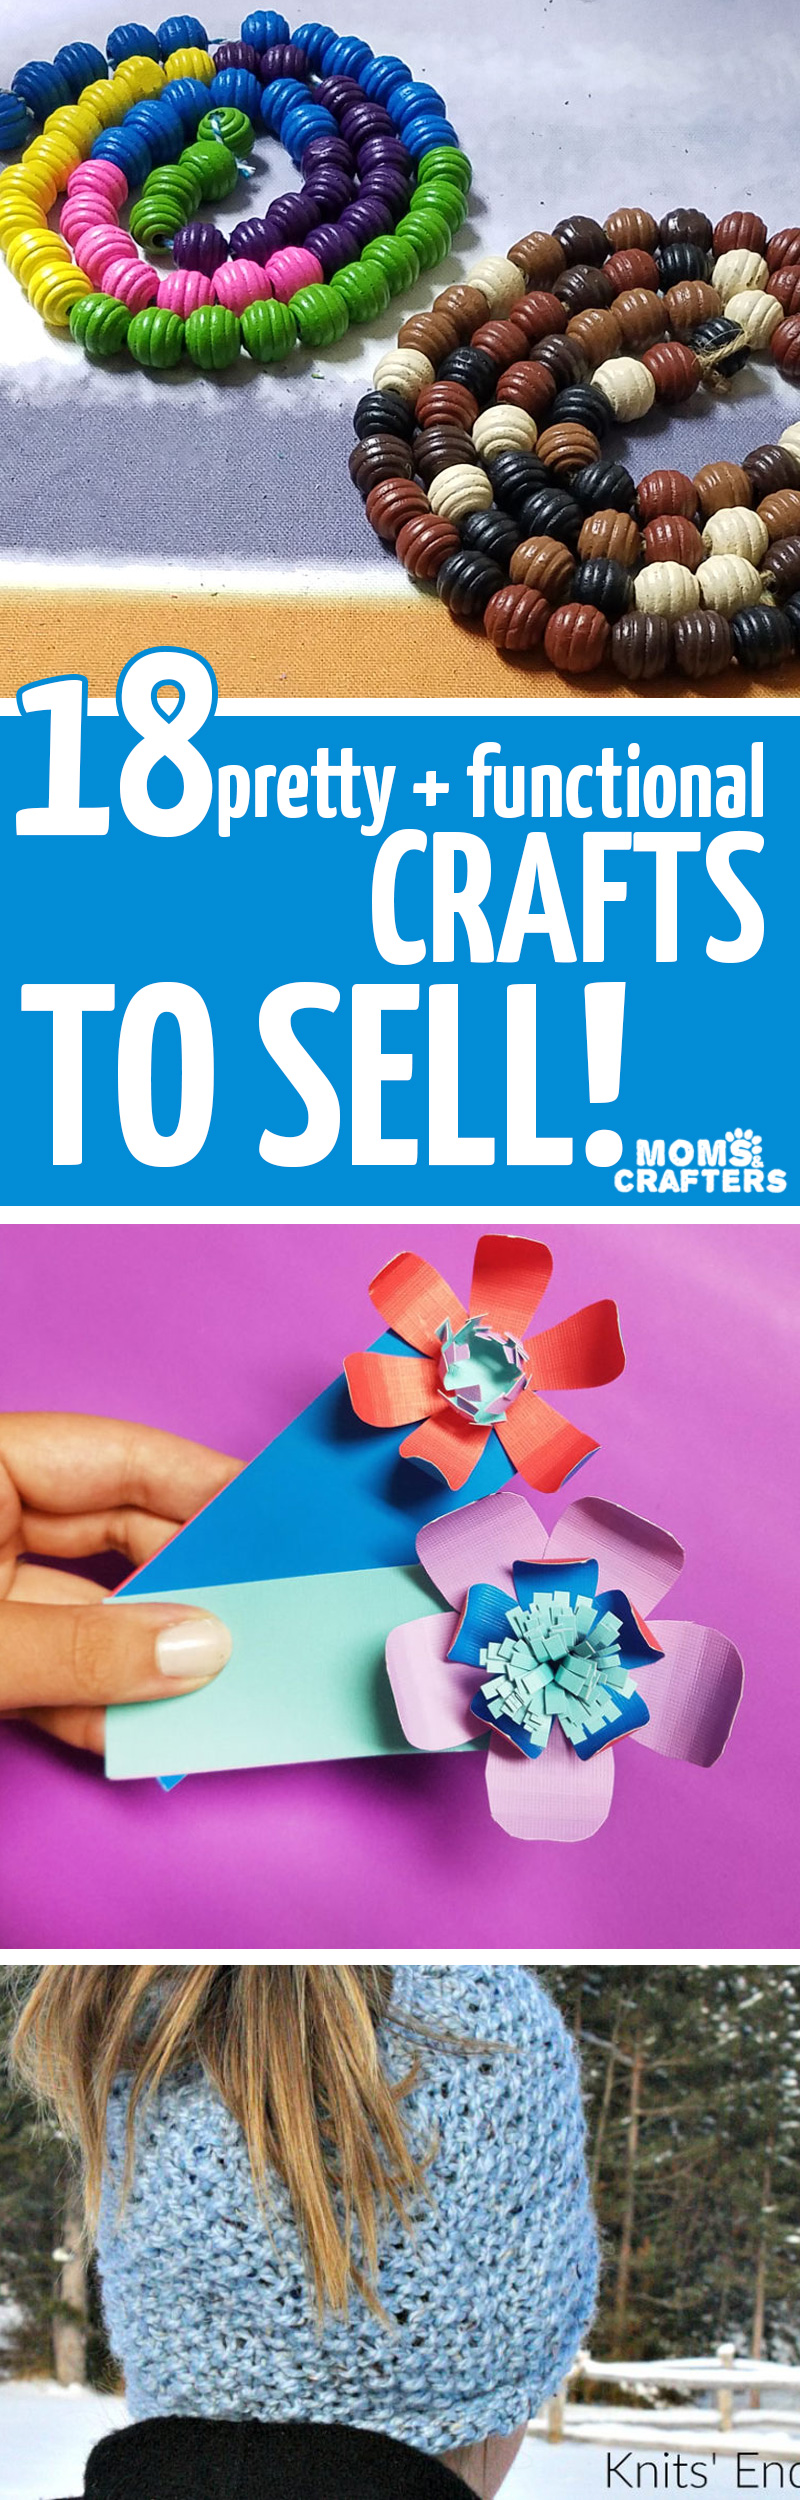 Things to make and sell at home moms and crafters for Great crafts to make and sell